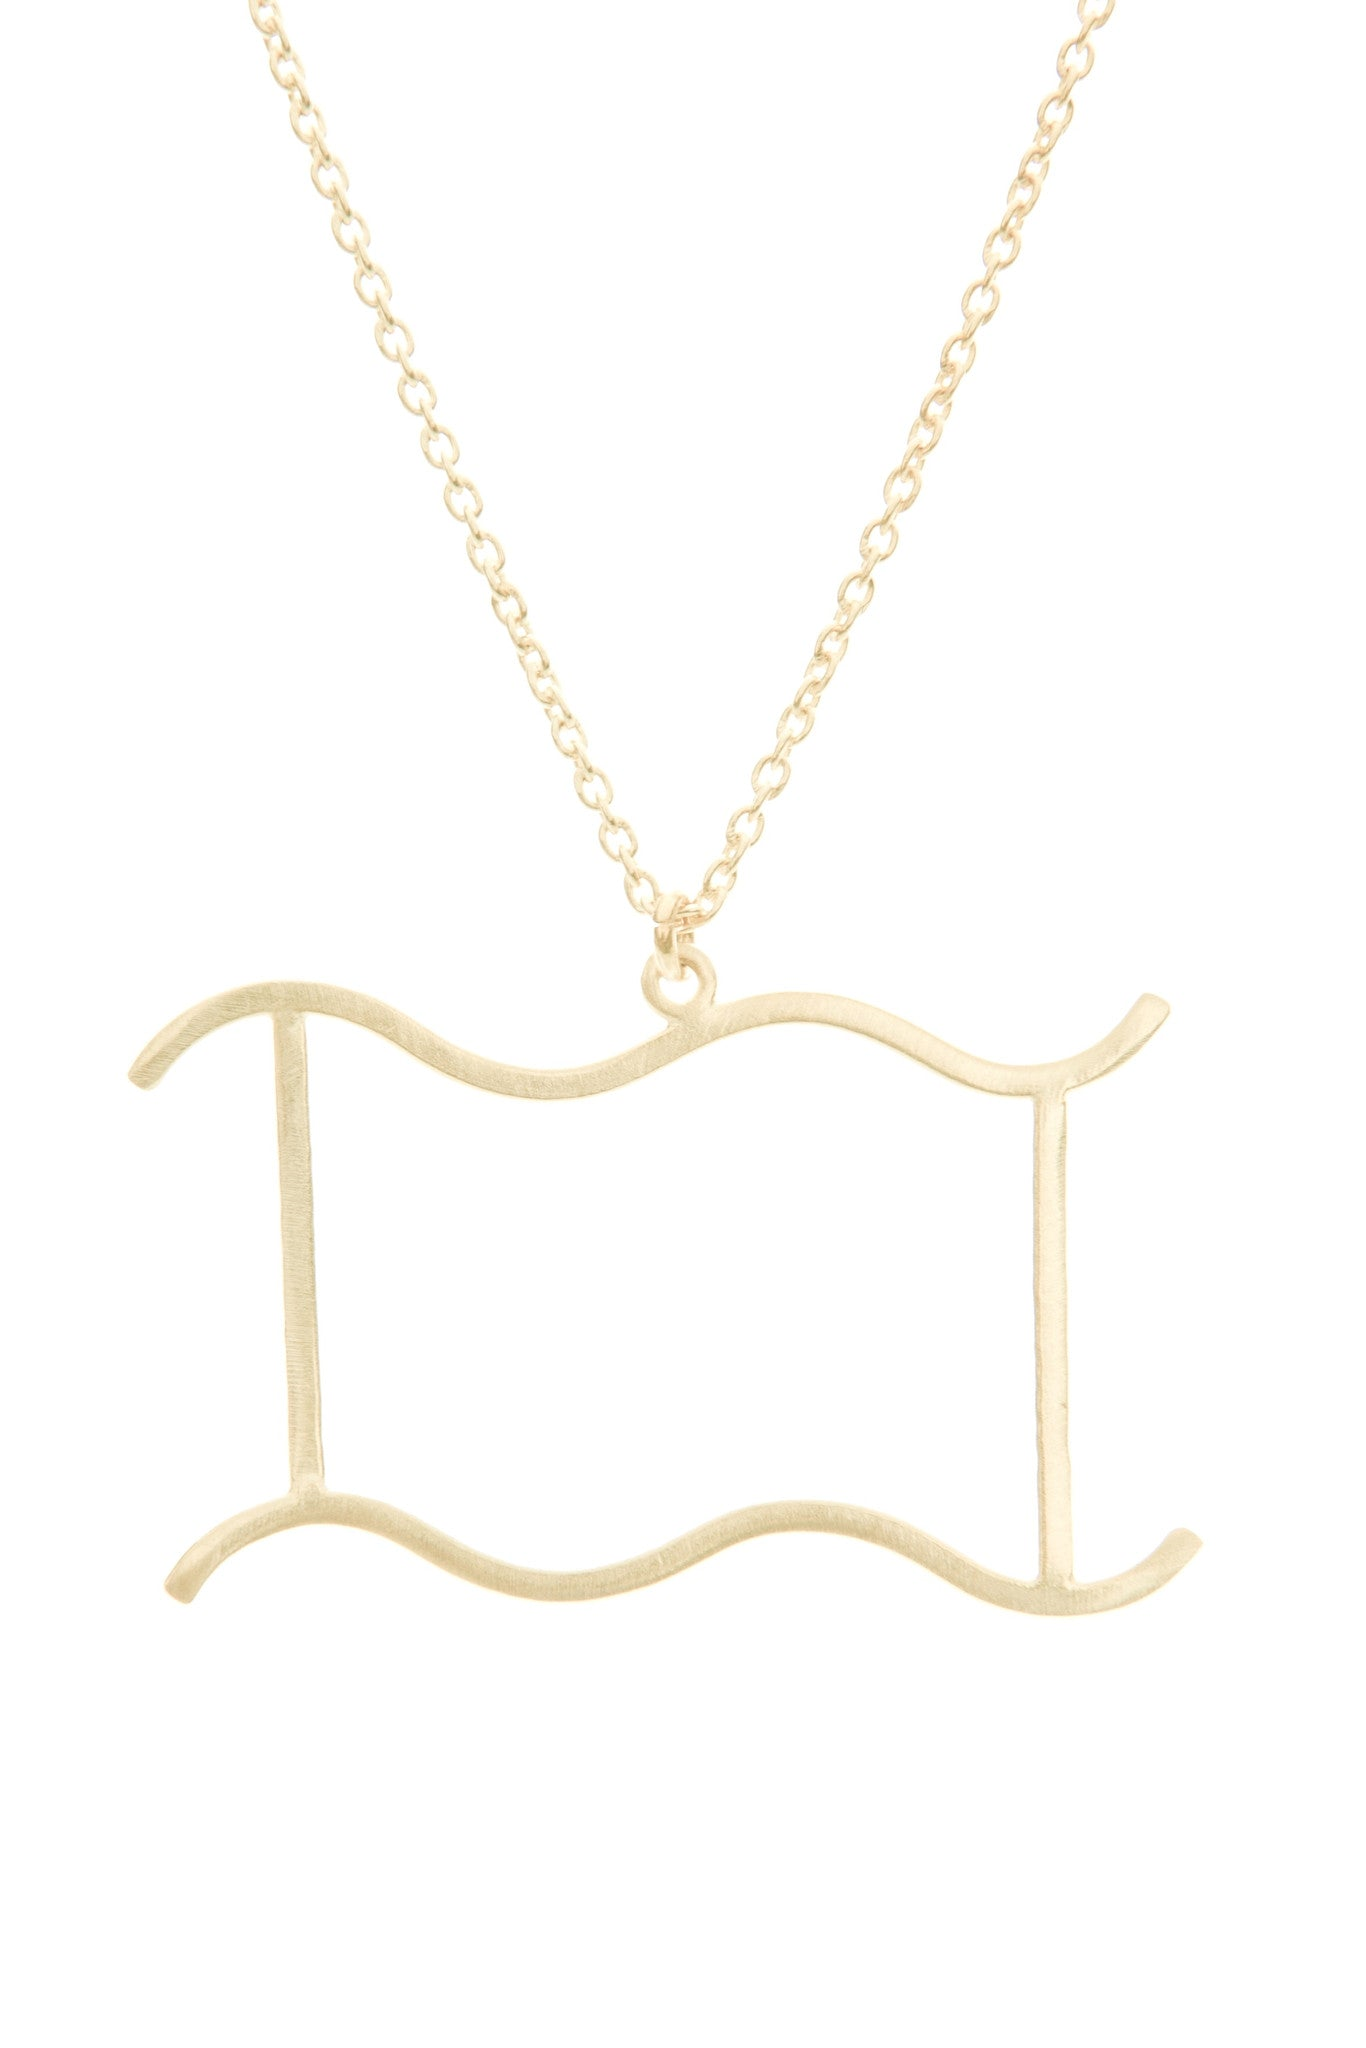 Aquarius Zodiac Gold Necklace - Lulugem.com